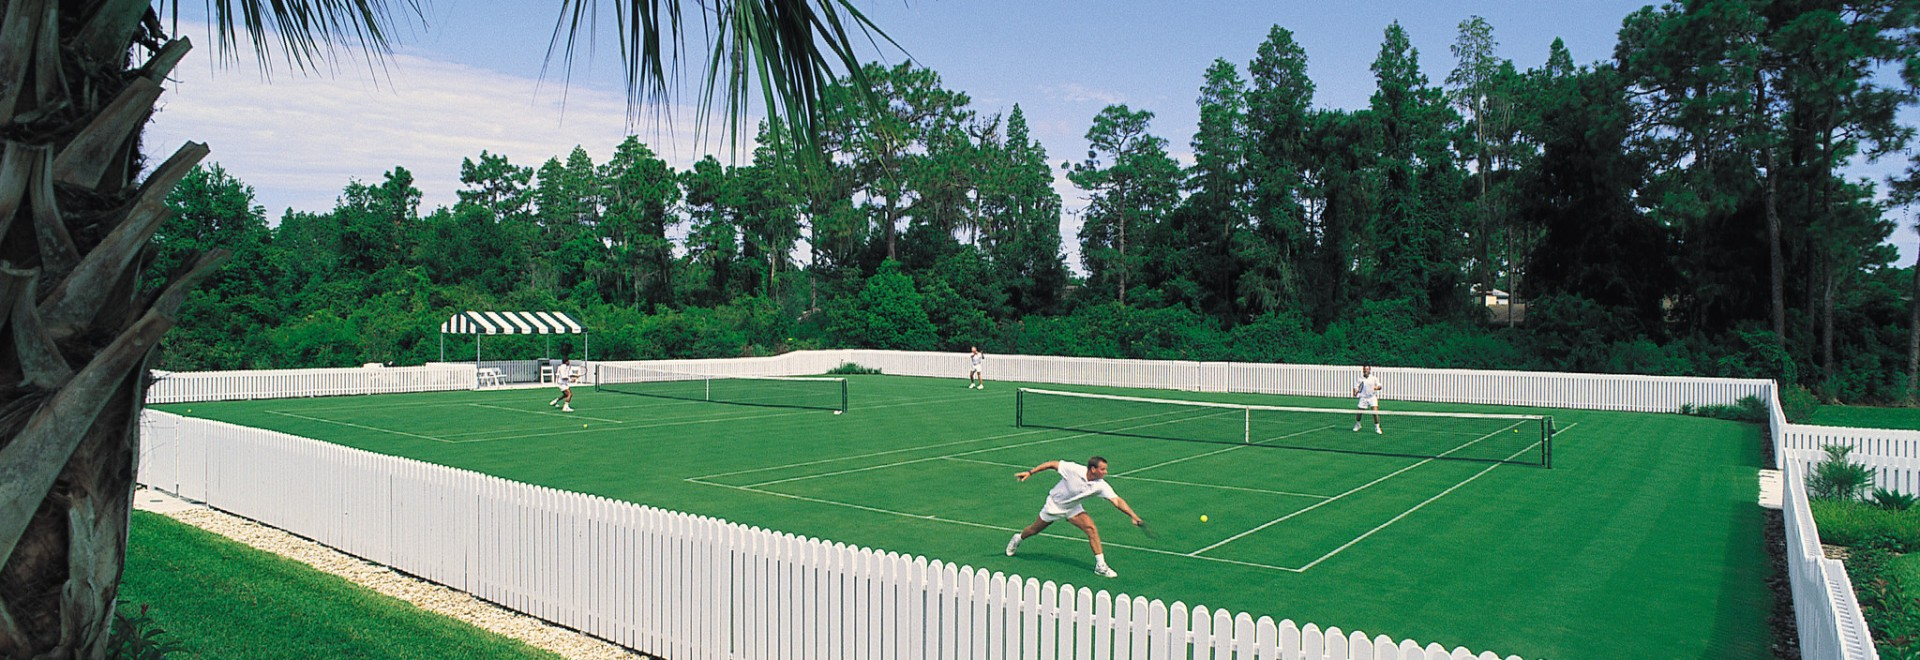 Saddlebrook Resort, Florida - Book. Travel. Play.